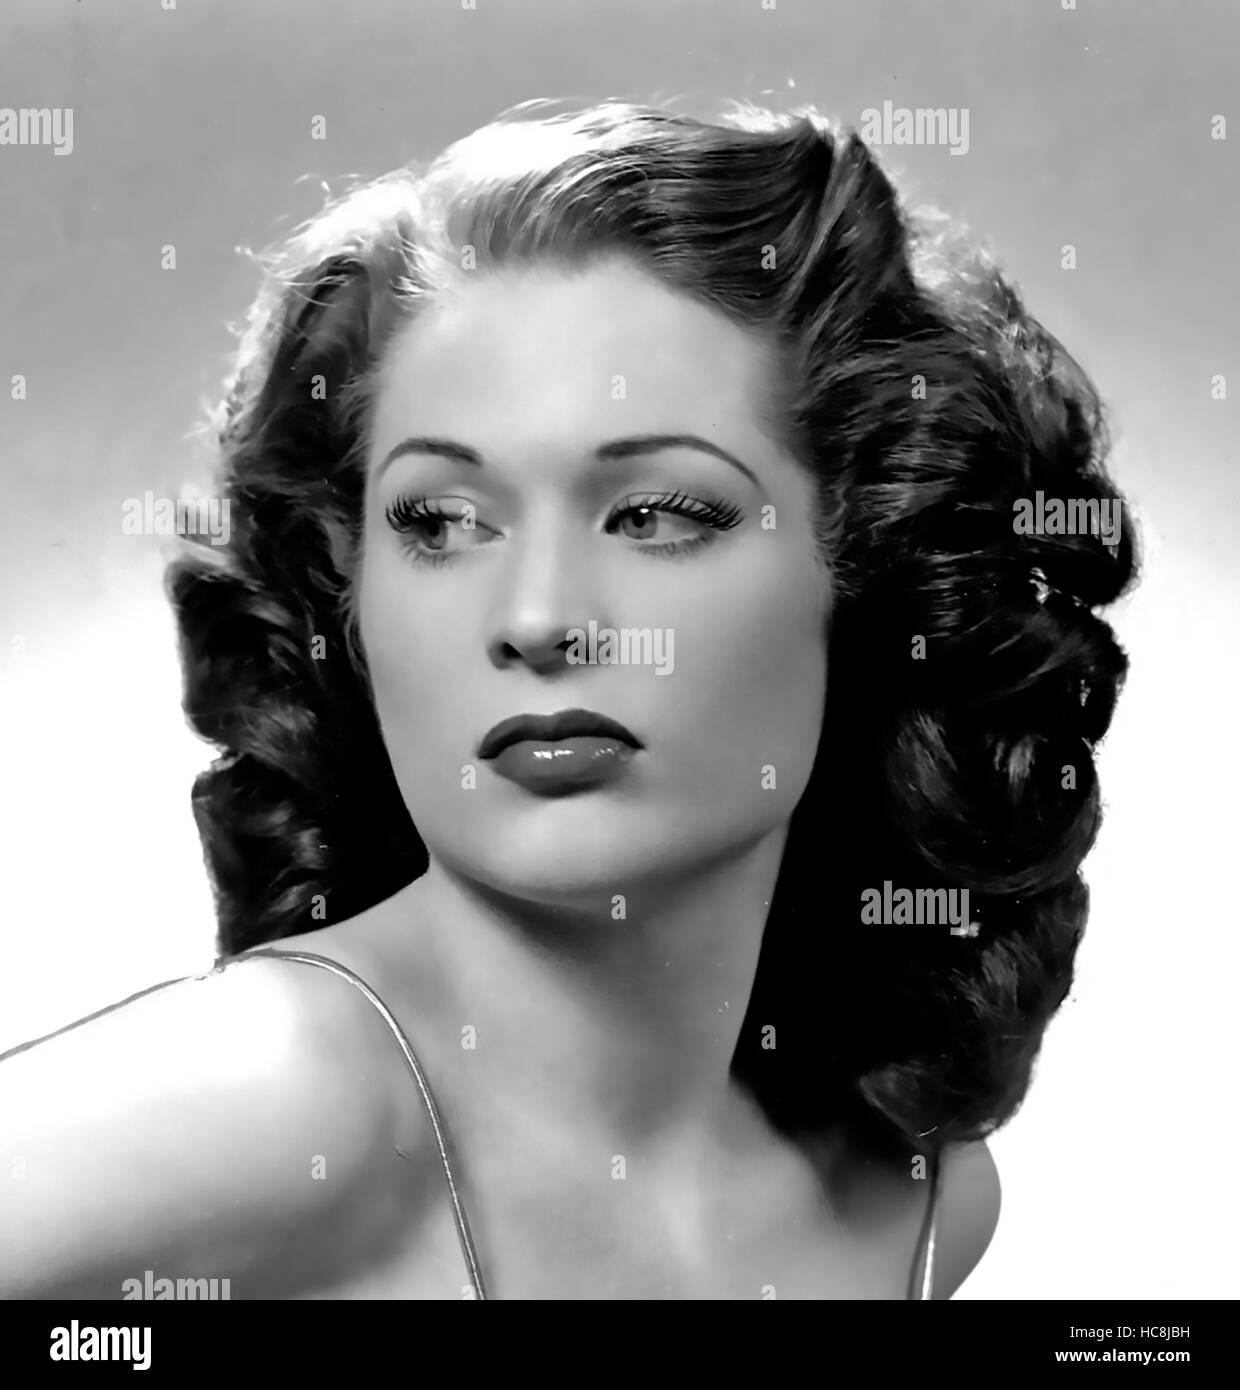 JANIE FORD US Texan Singer And Small Time Film Actress About 1950